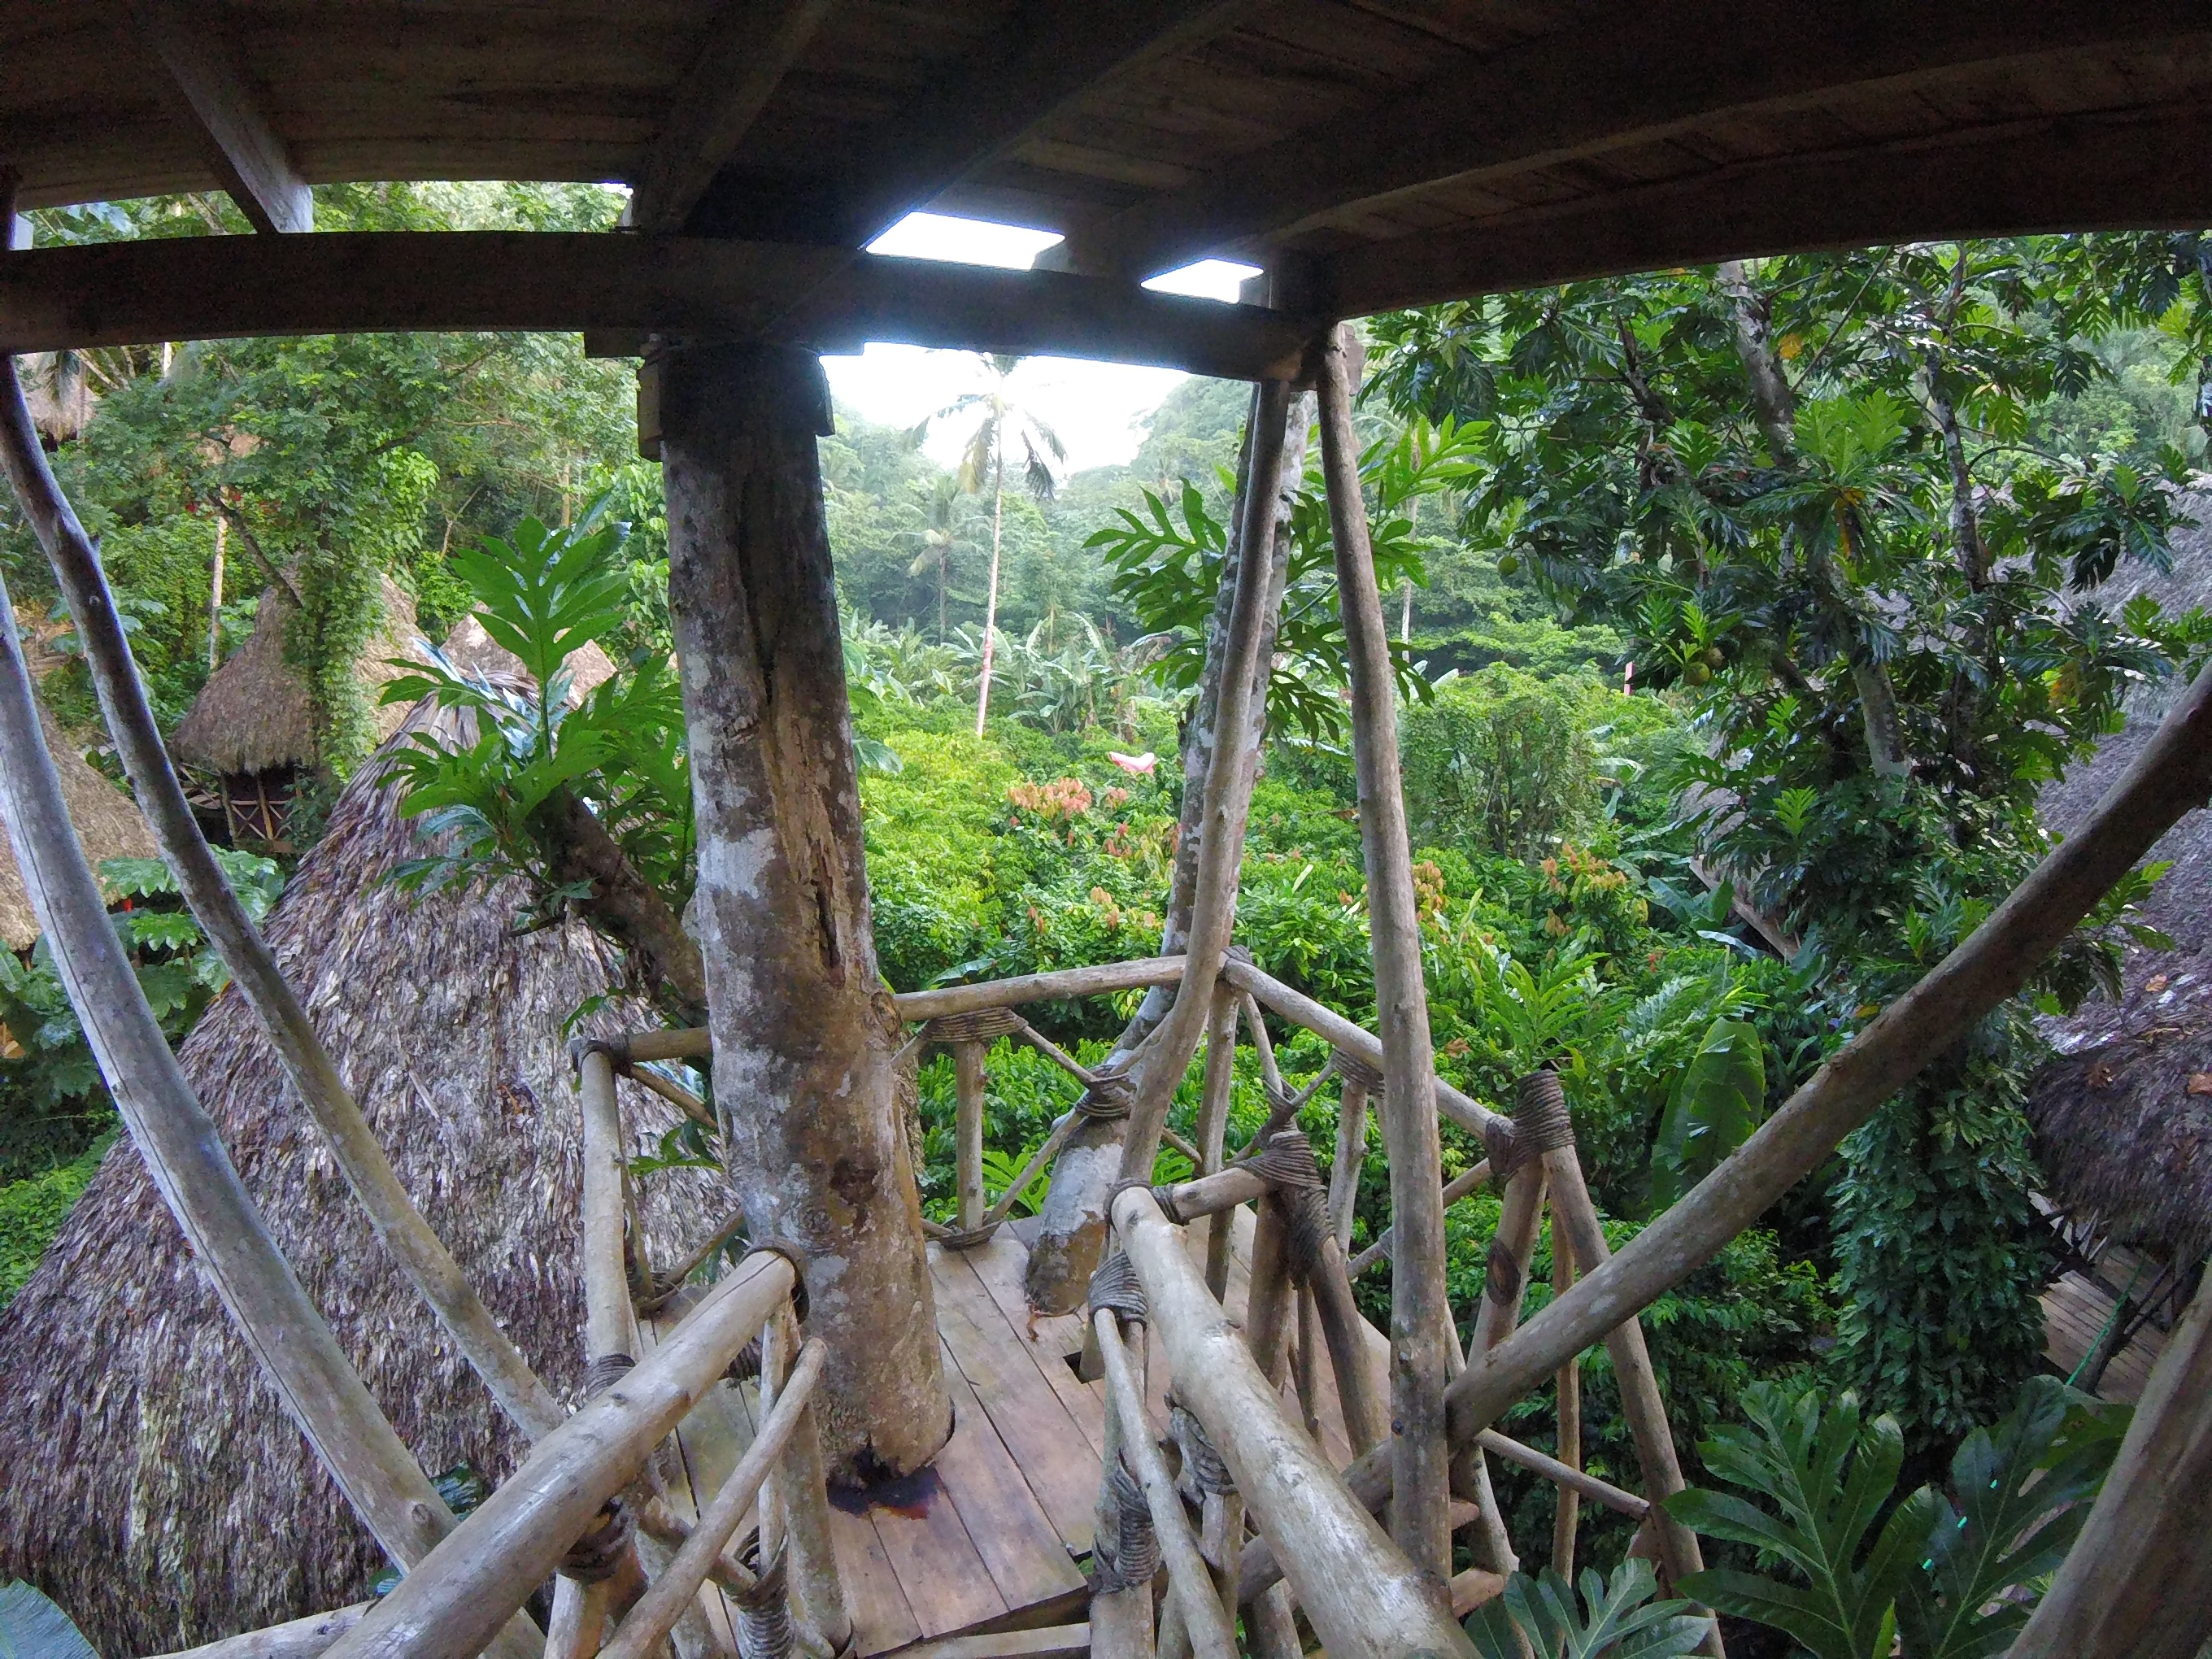 Dominican Tree House Village: A Must Visit Place in Dominican Republic